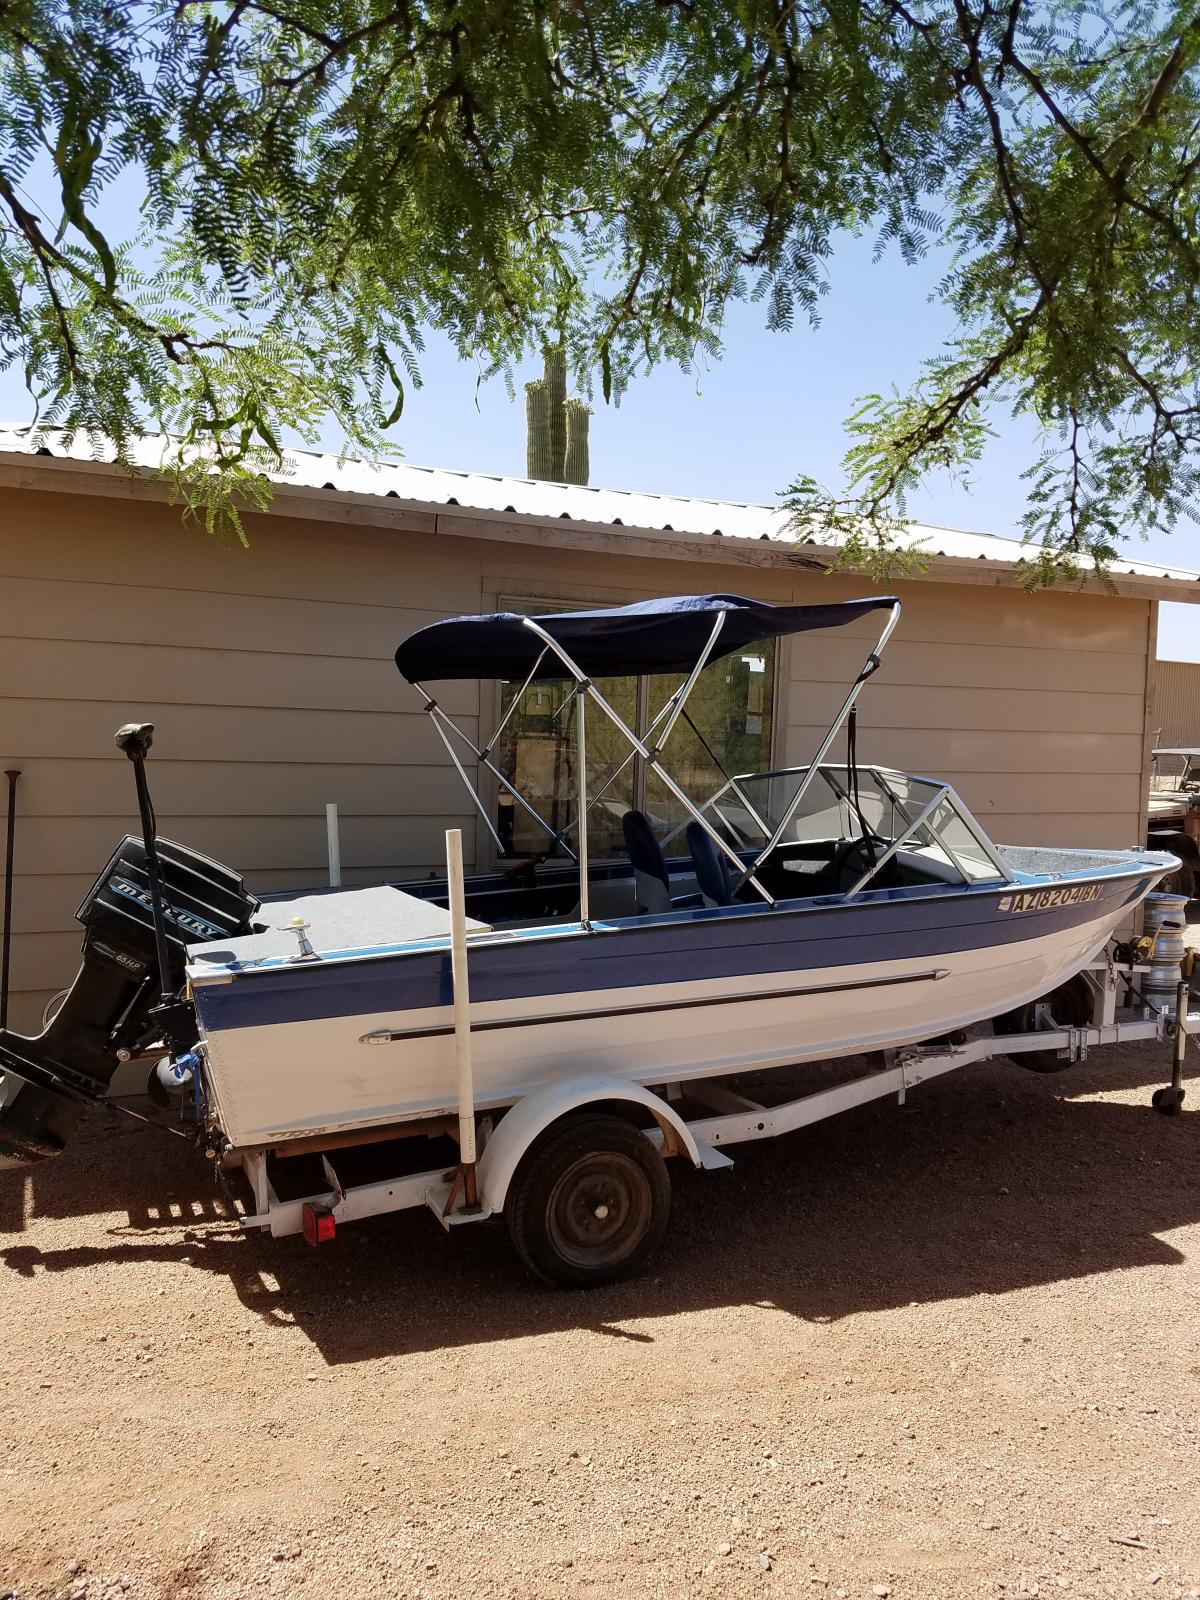 16 foot fishing or ski boat classified ads for Az game and fish boat registration